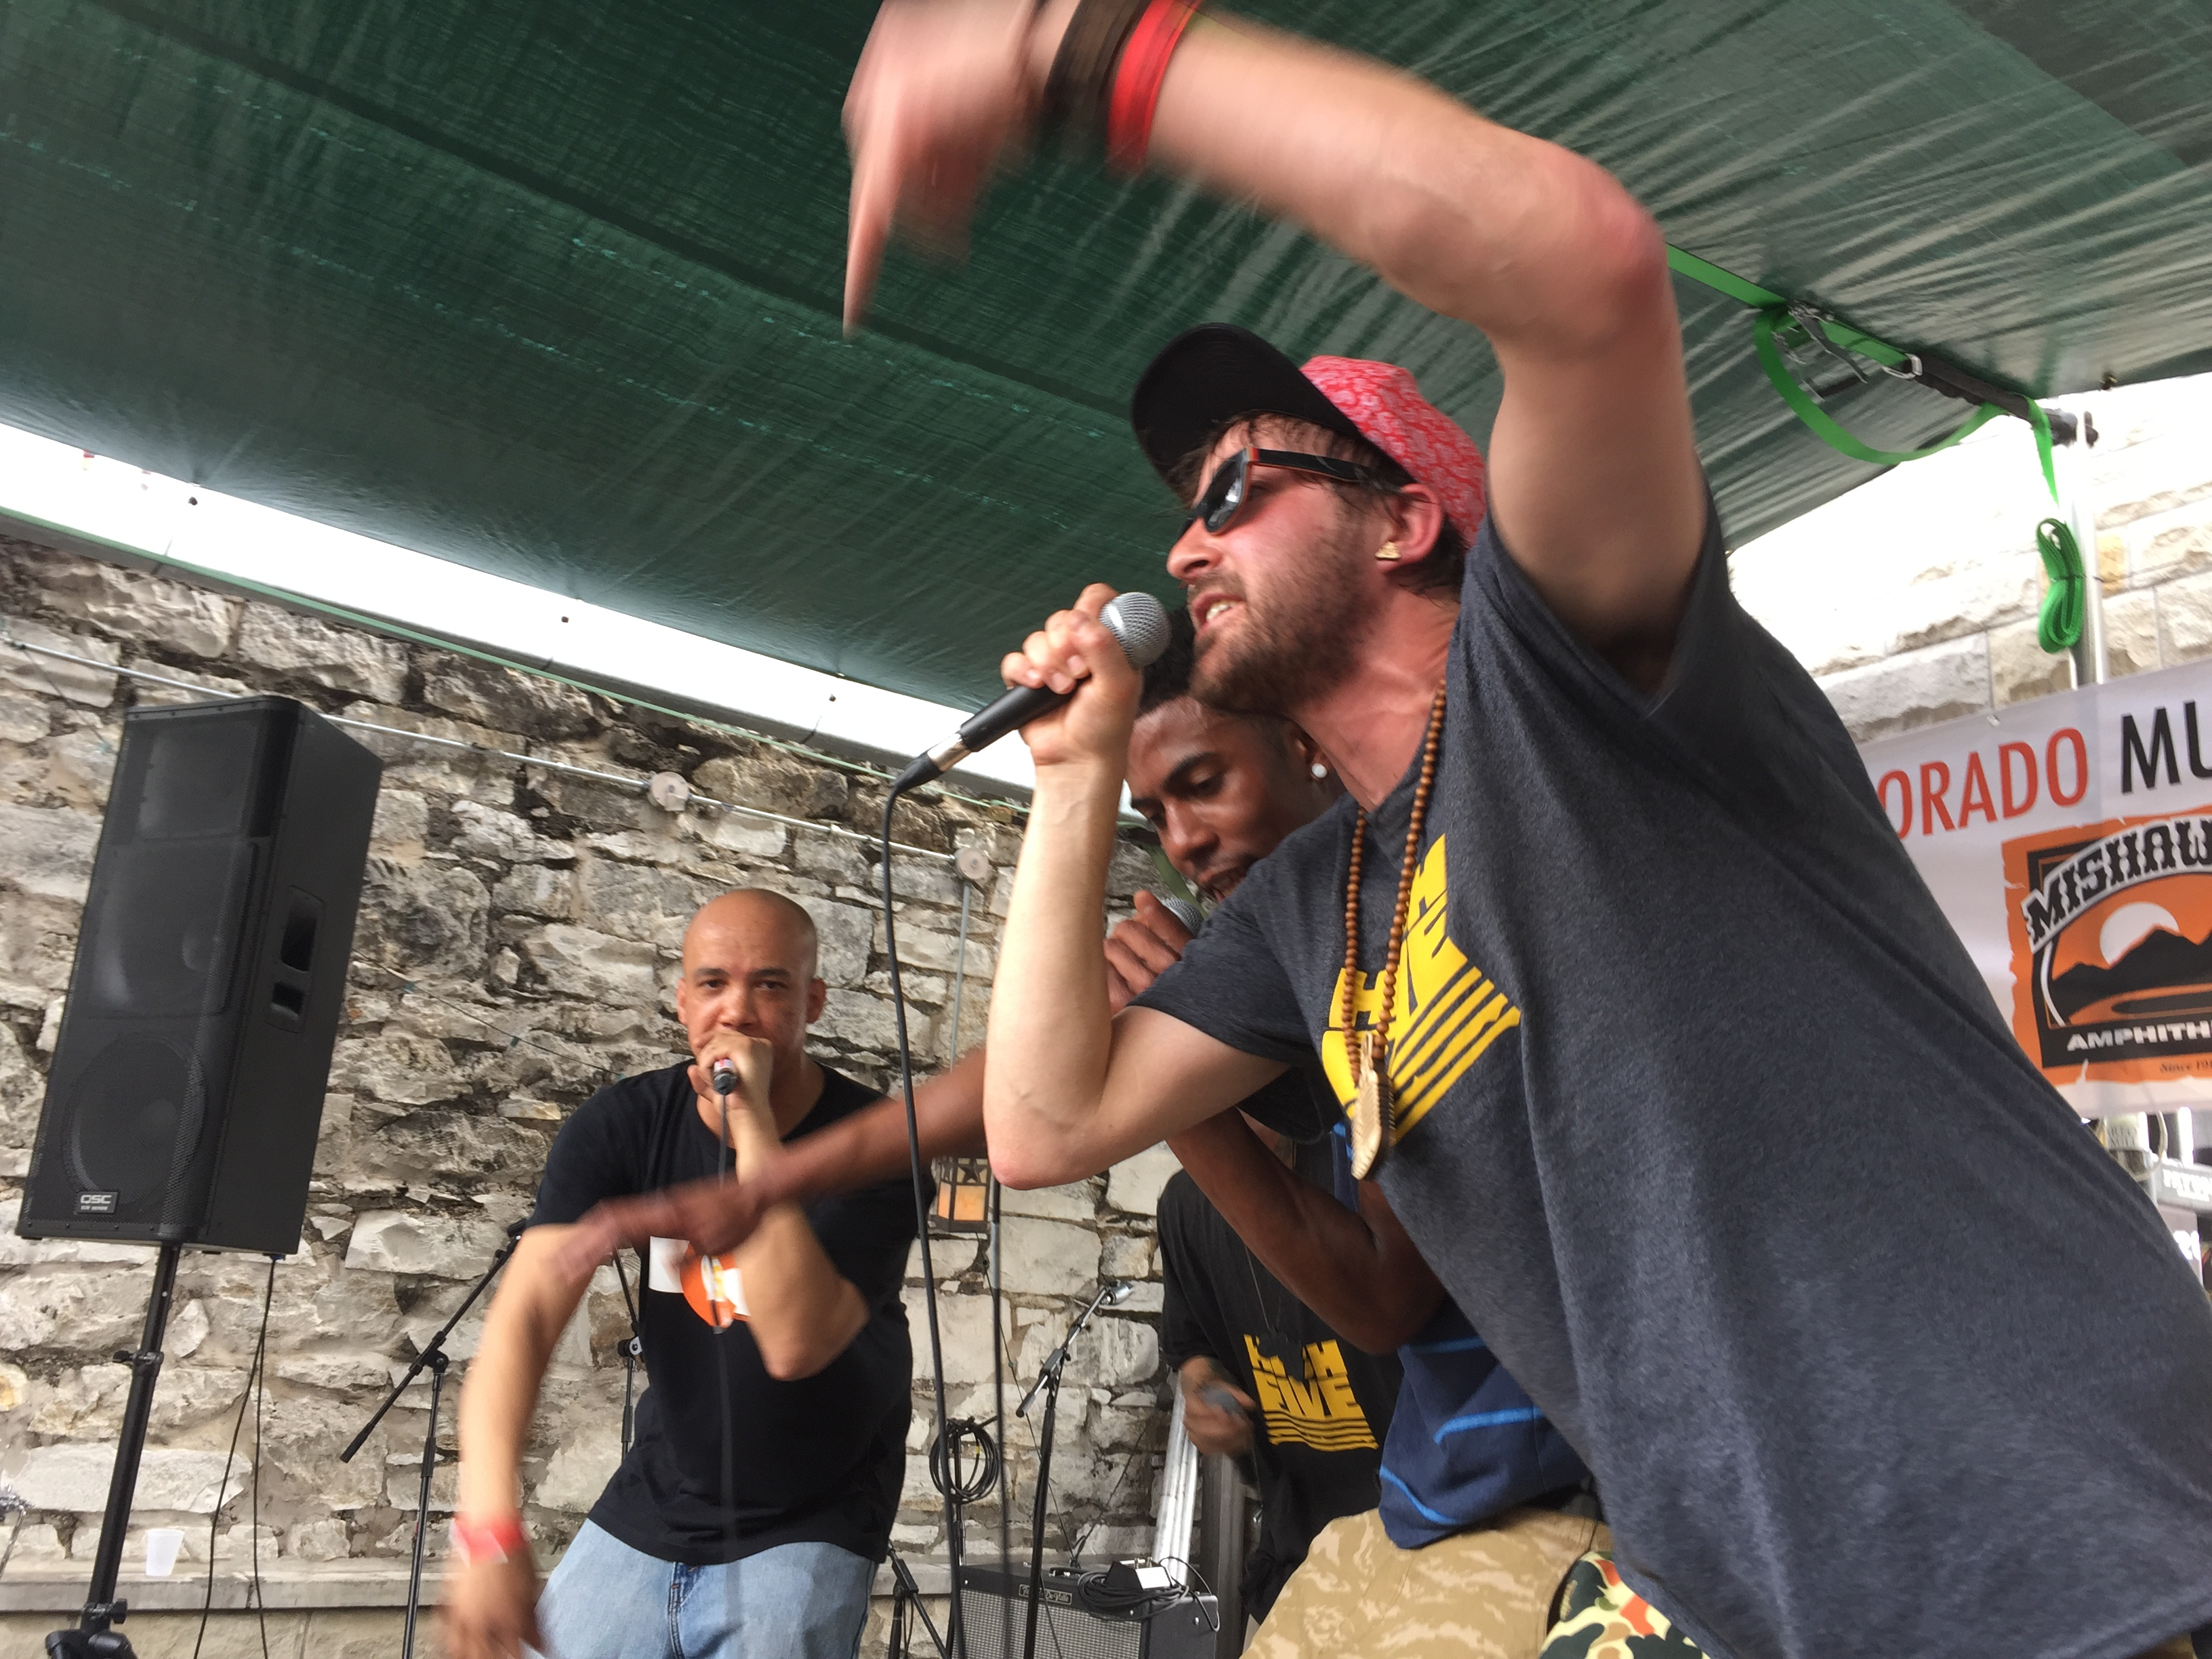 High Five Hip Hop was one of more than a dozen artists that performed as part of a hip hop showcase at the Colorado Music Party during SXSW 2015. Photo by Quentin Young